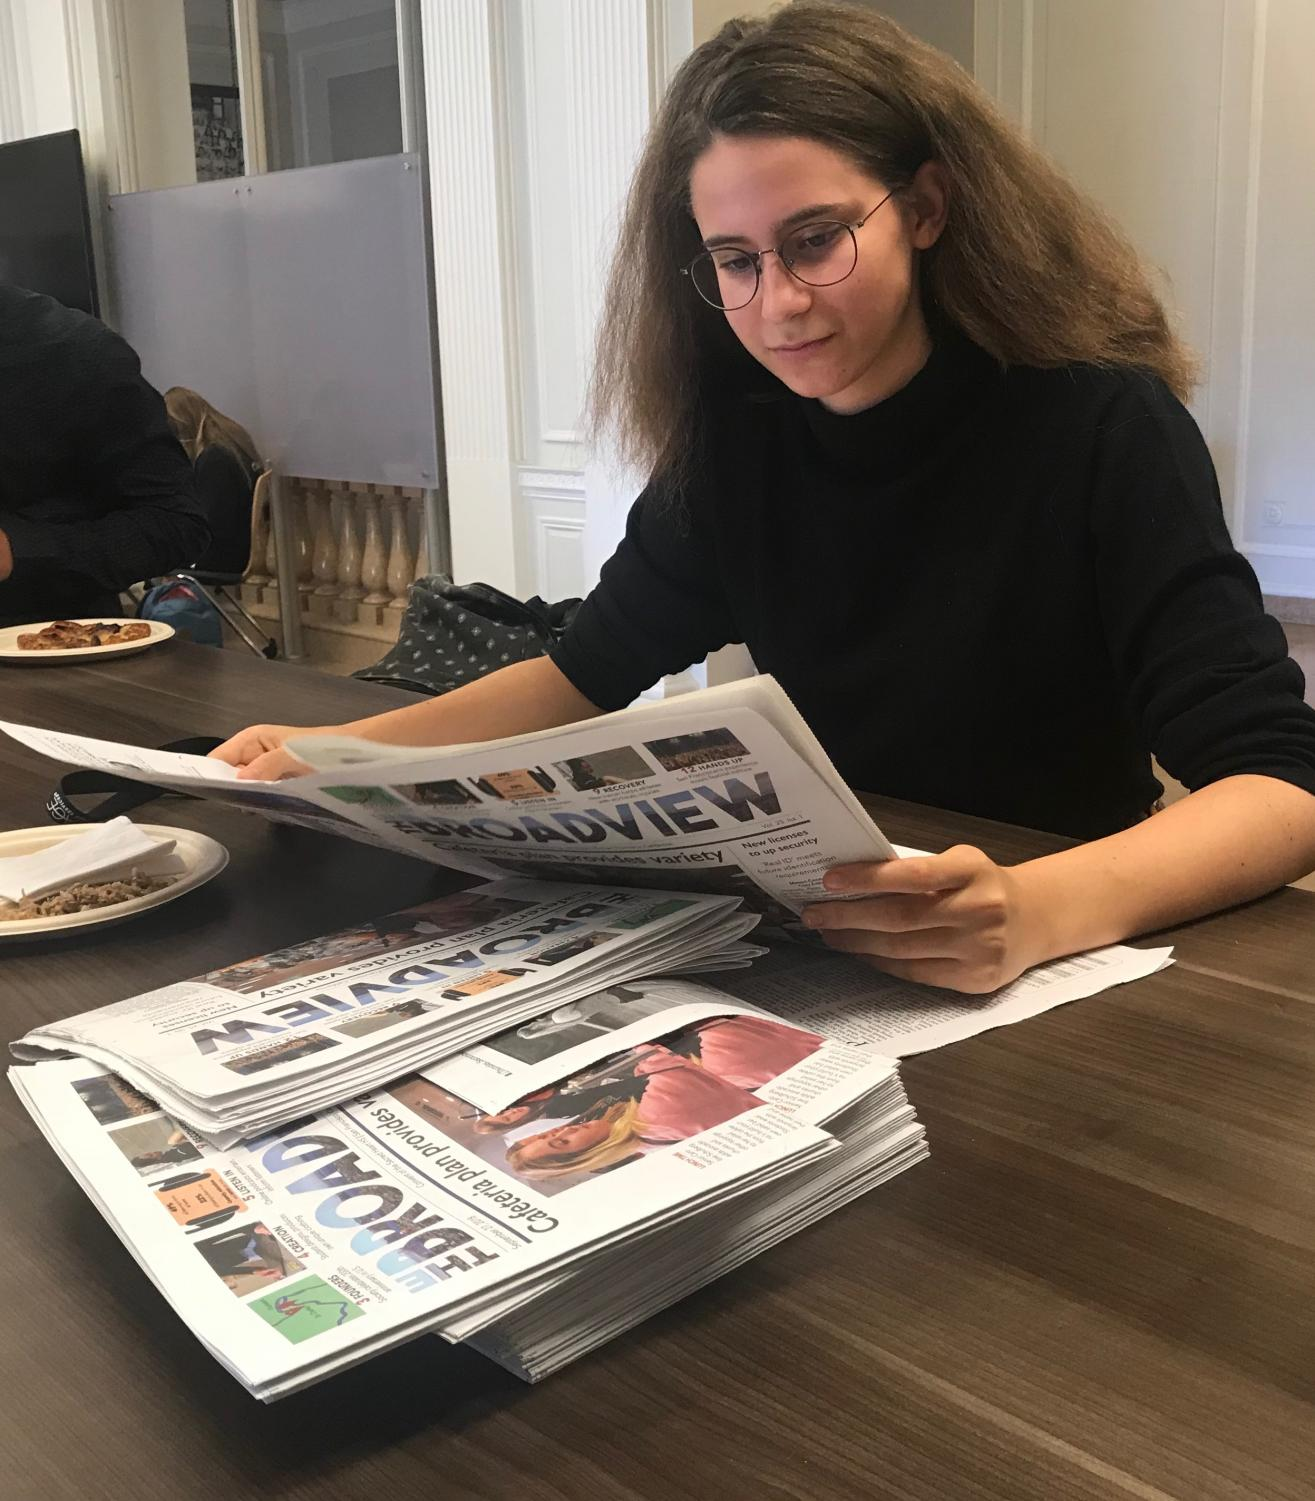 Junior Arlena Jackson reads the latest edition of The Broadview during National Newspaper Week. This week celebrates the service newspapers provide to the nation.